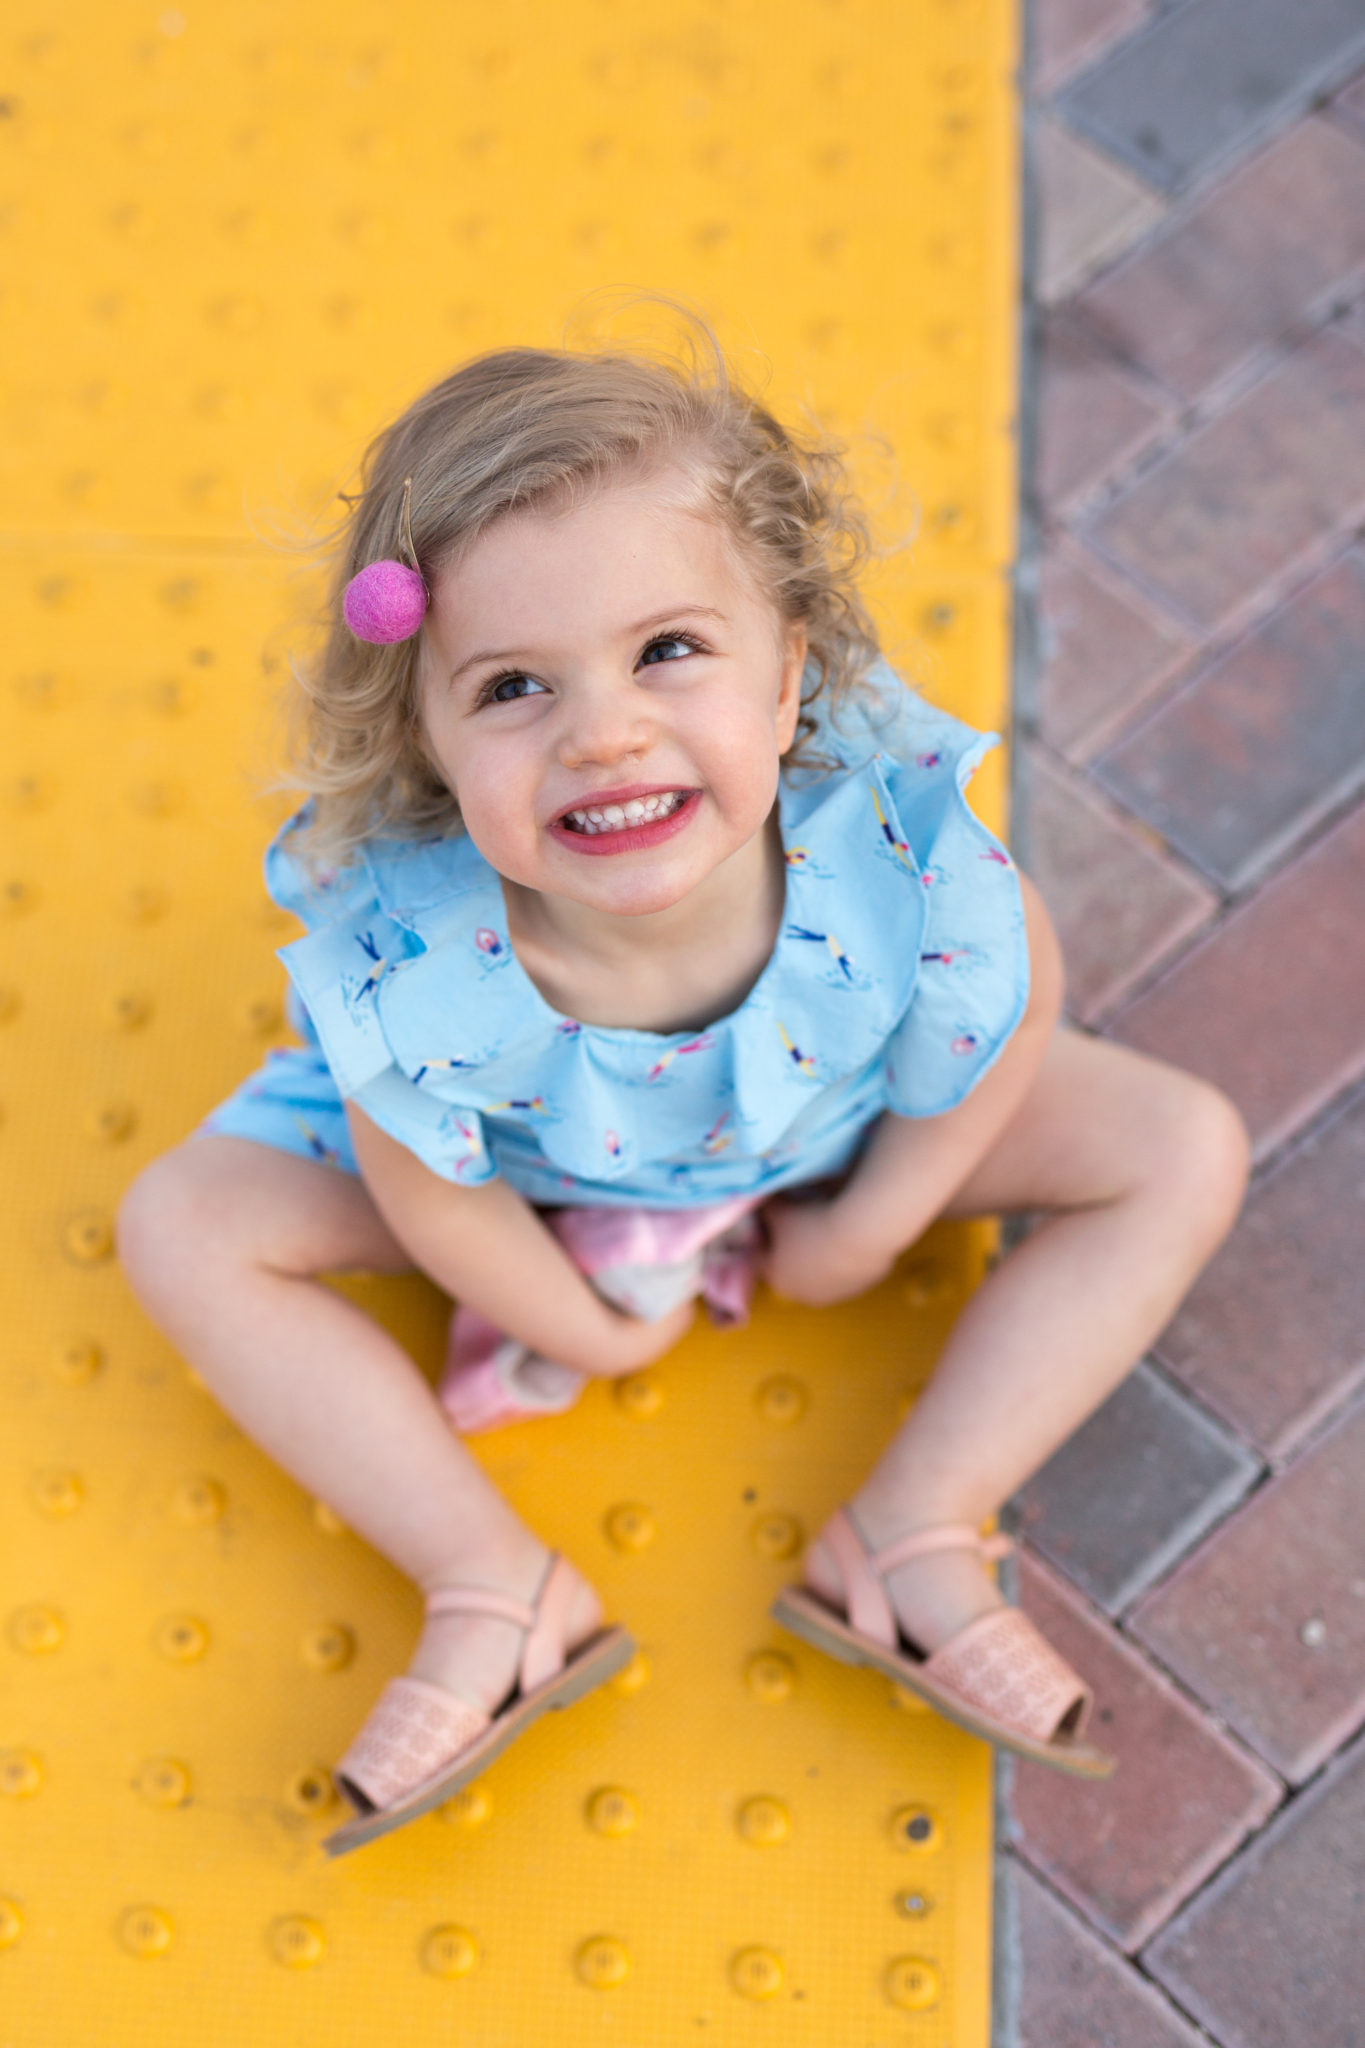 what to do and where to stay in delray beach florida | summer toddler style | summer style | beach style | west palm beach flordia | seagate hotel delray beach florida | family vacation with a toddler | margaret m slimming pants | pippa and indy bows for girls